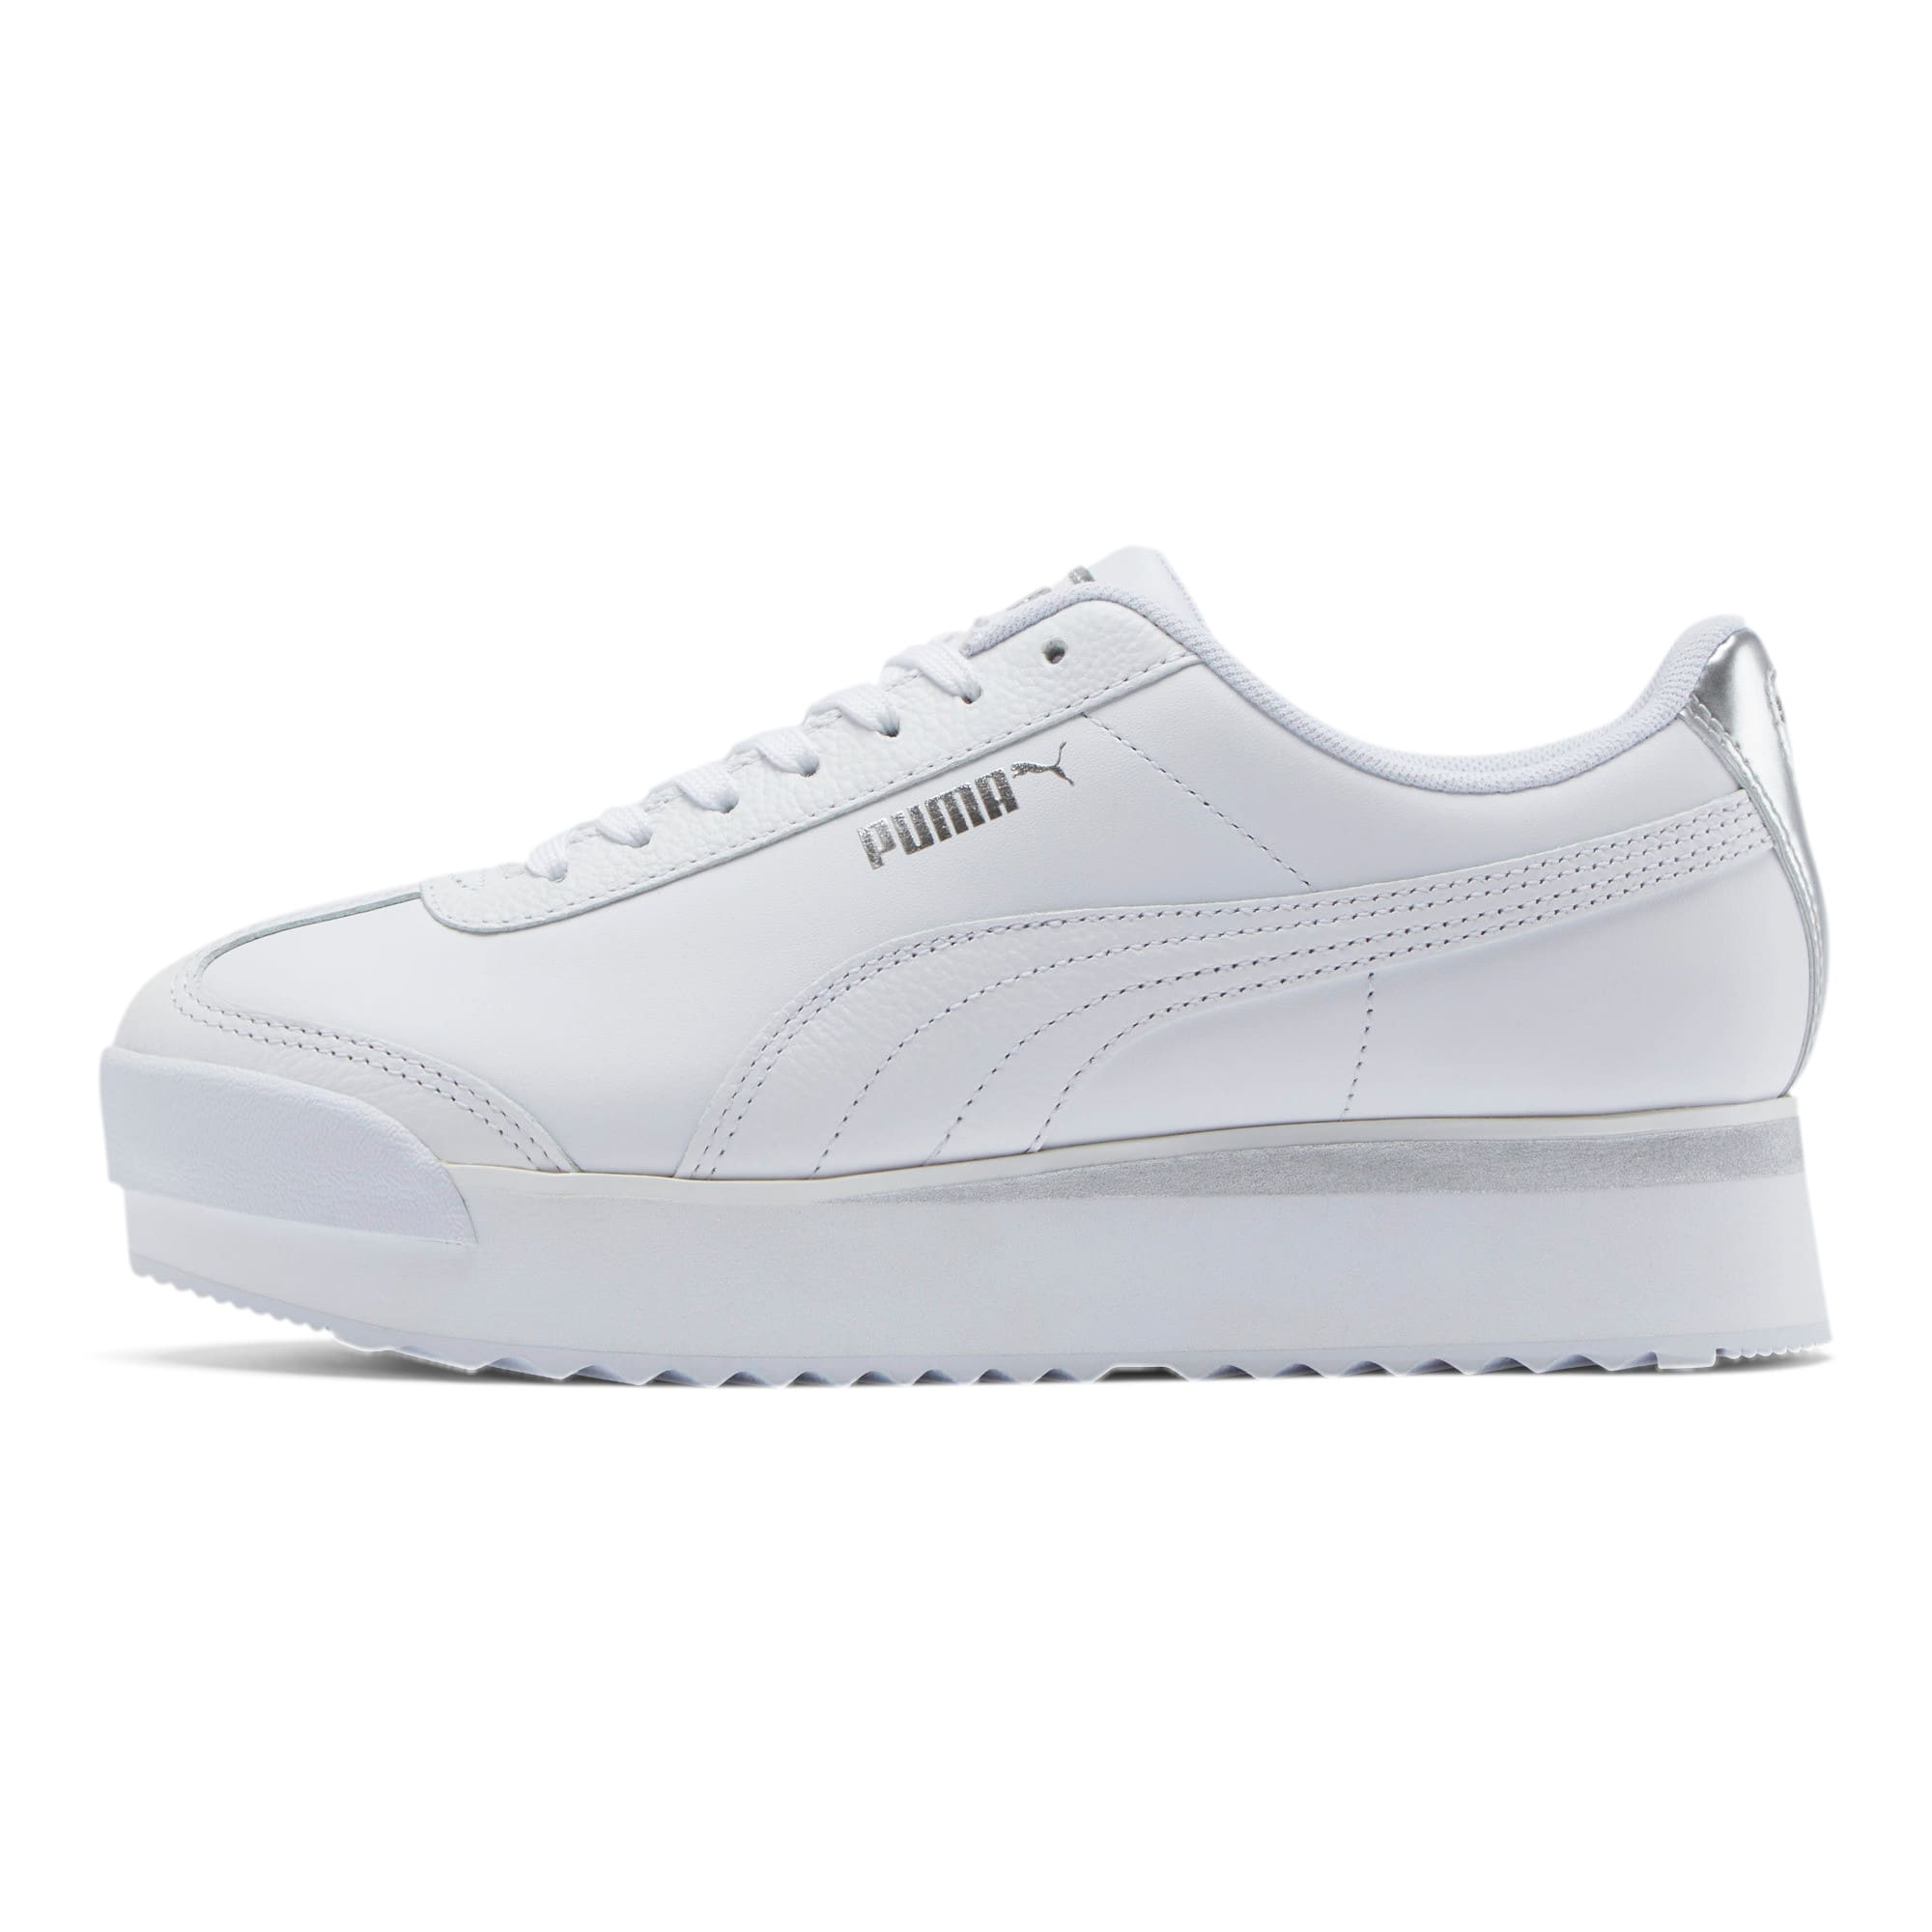 Thumbnail 1 of Roma Amor Leather Metallic Women's Sneakers, White-Whisper White-Silver, medium